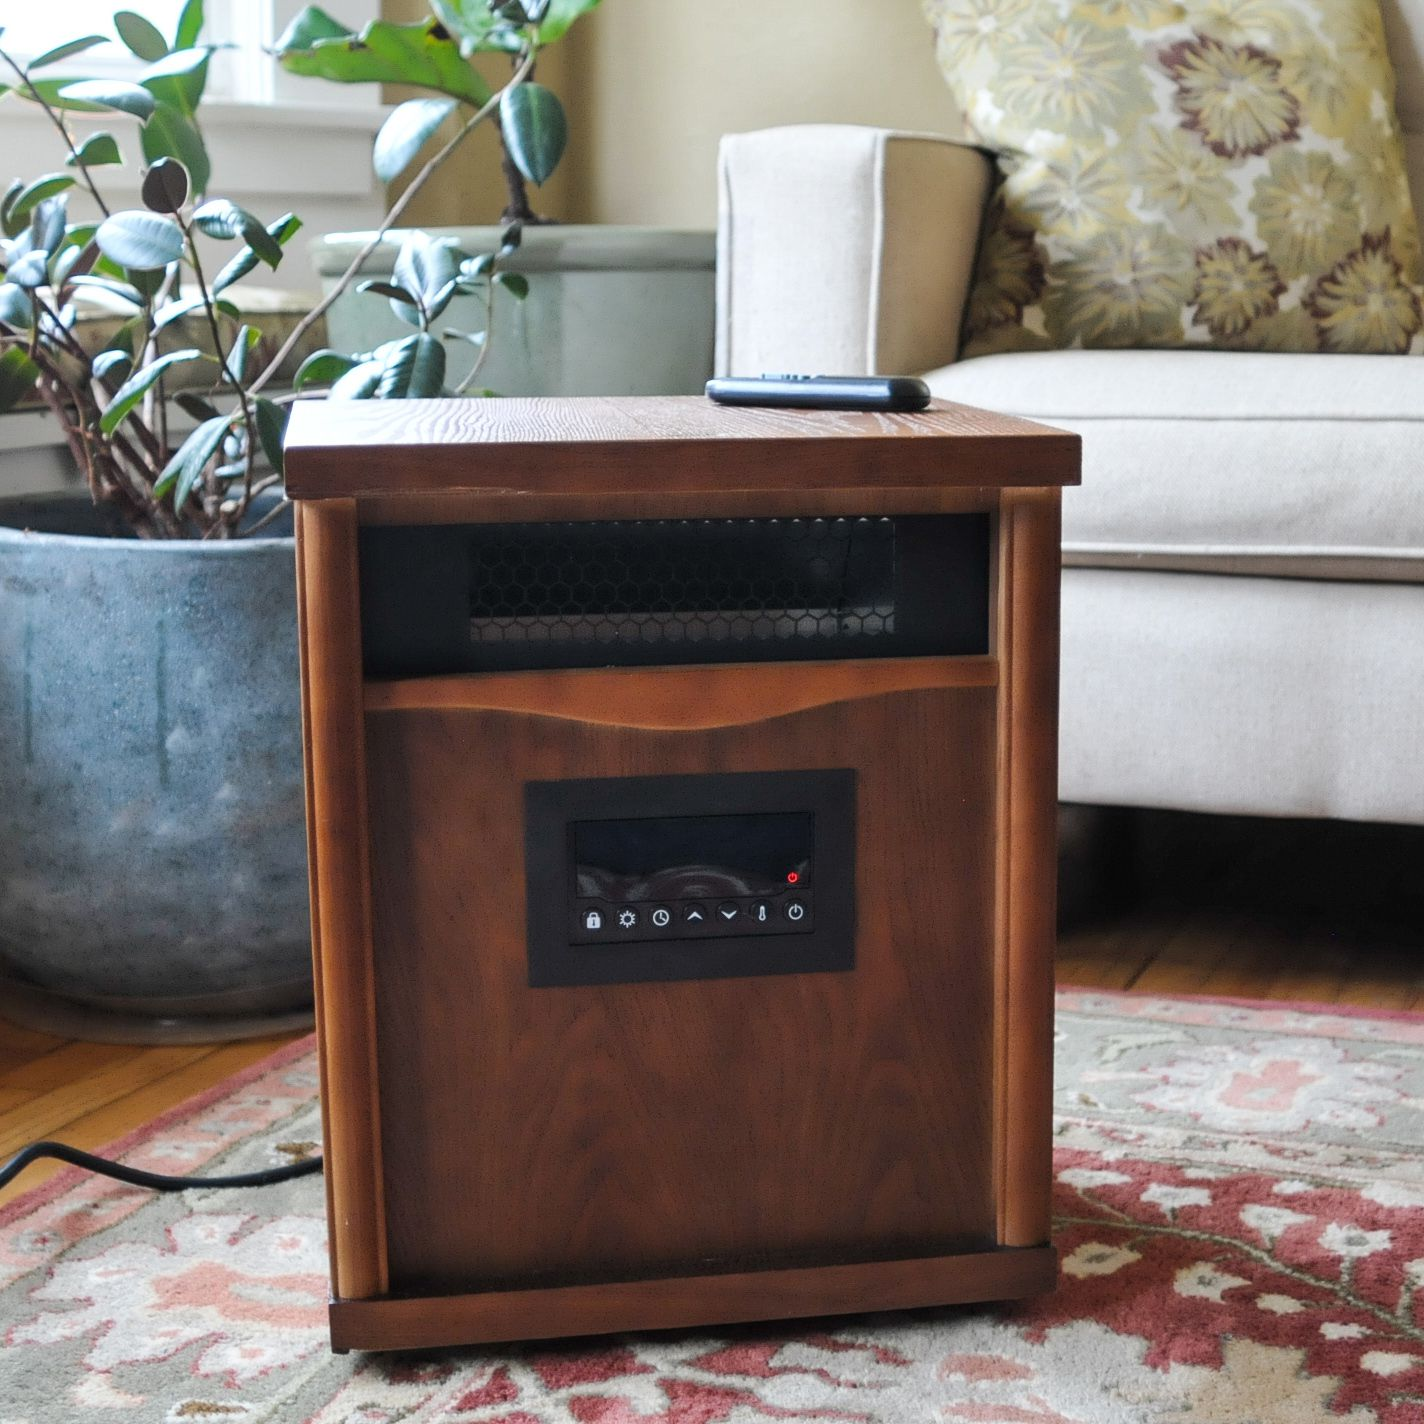 Lifesmart 6 Element IR Heater Wood Cabinet with Remote Control